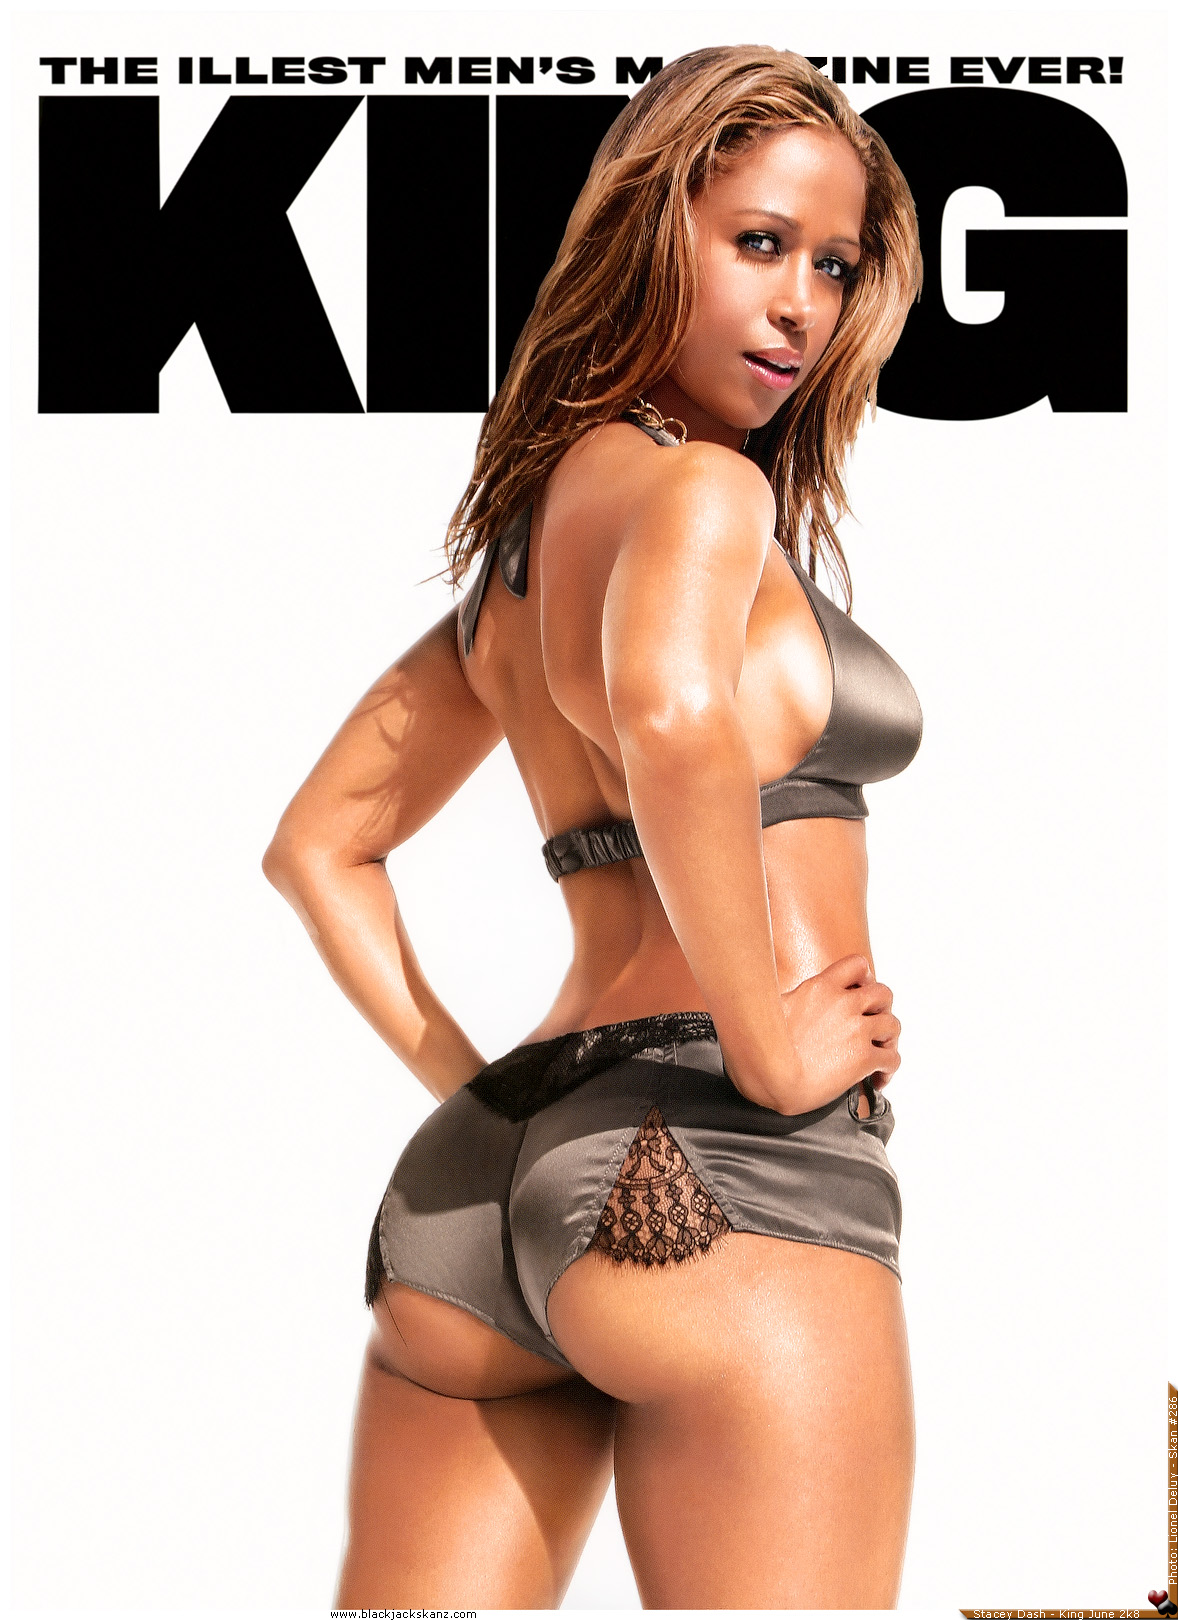 http://yosayword.files.wordpress.com/2008/07/skan286-stacey-dash.jpg